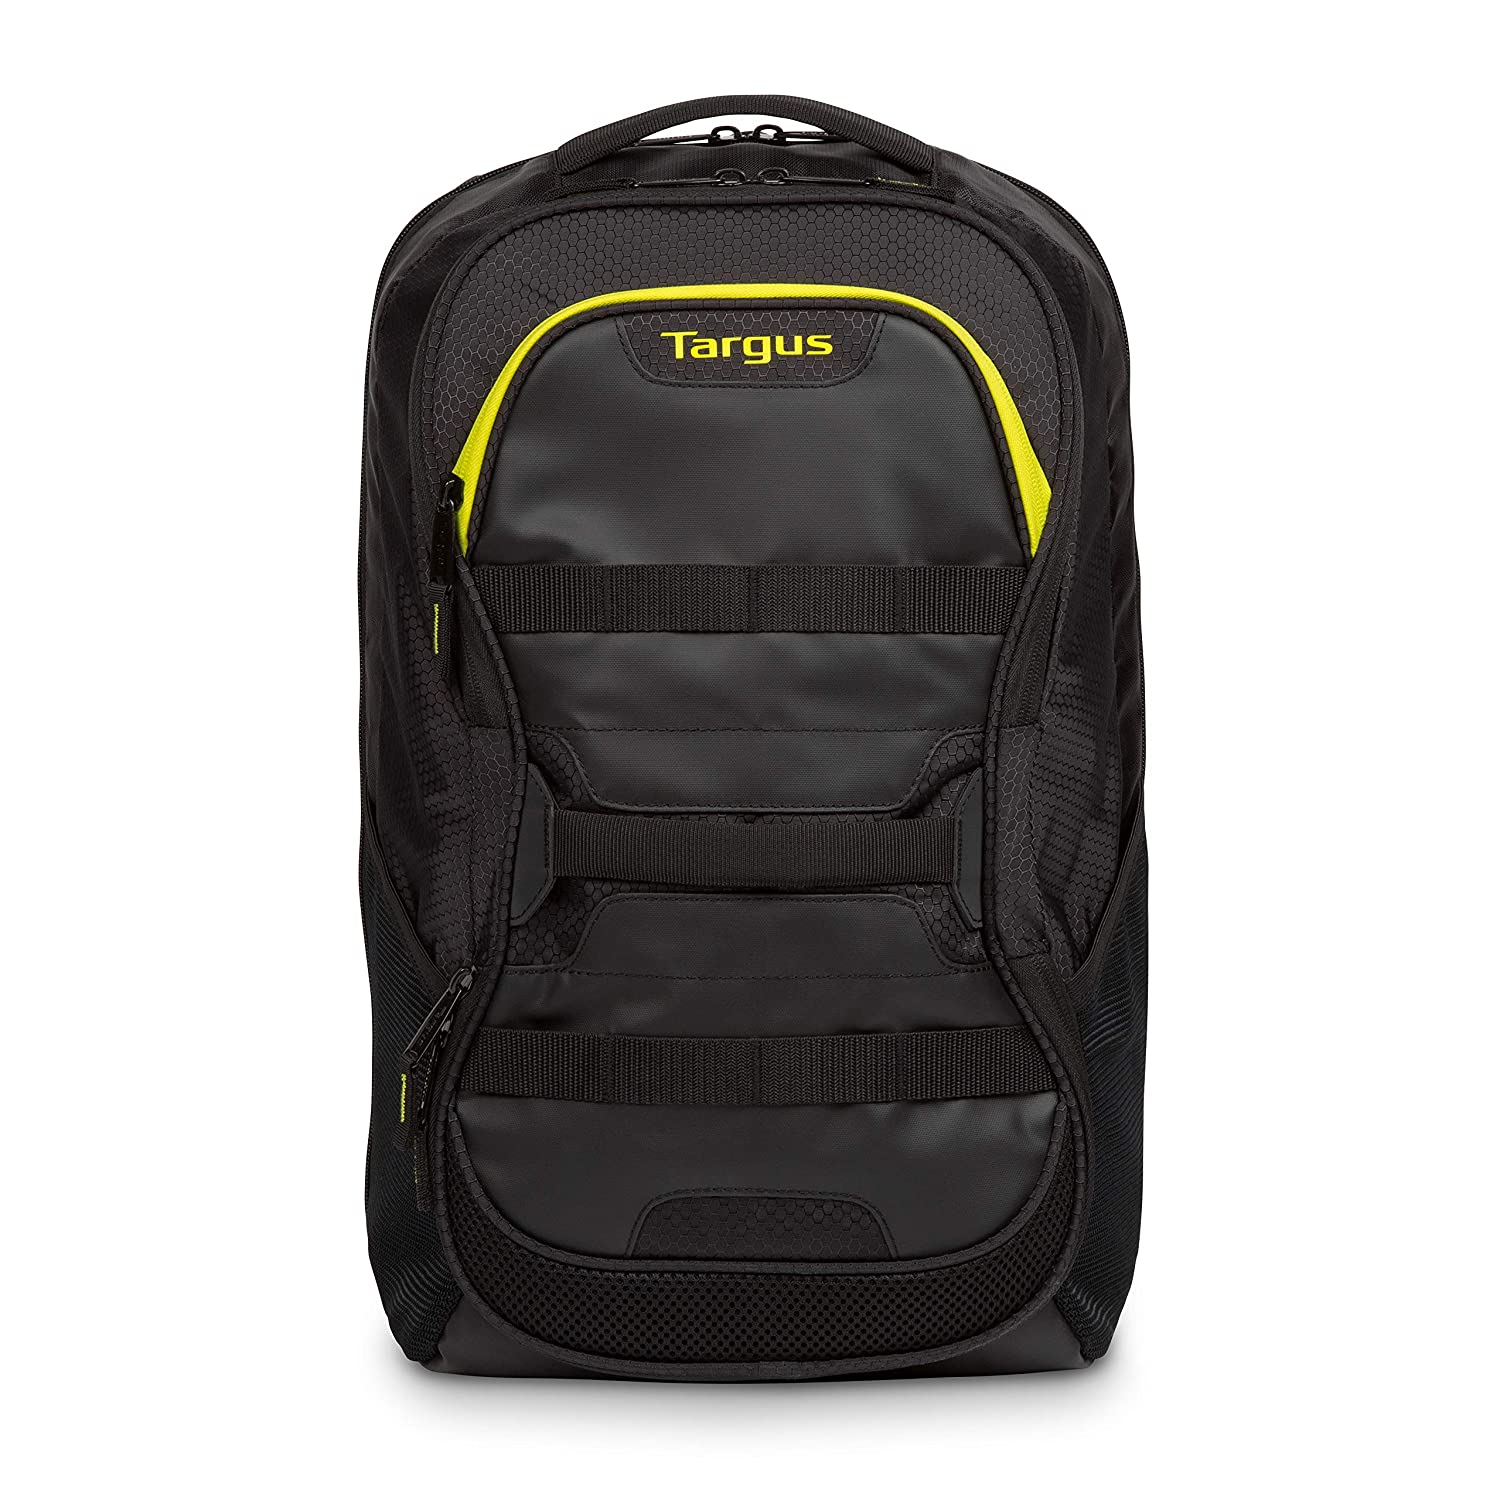 Amazon.com: Targus Work and Play Fitness Backpack for 15.6-Inch Laptops, Gym Backpack, Black (TSB944US): Computers & Accessories